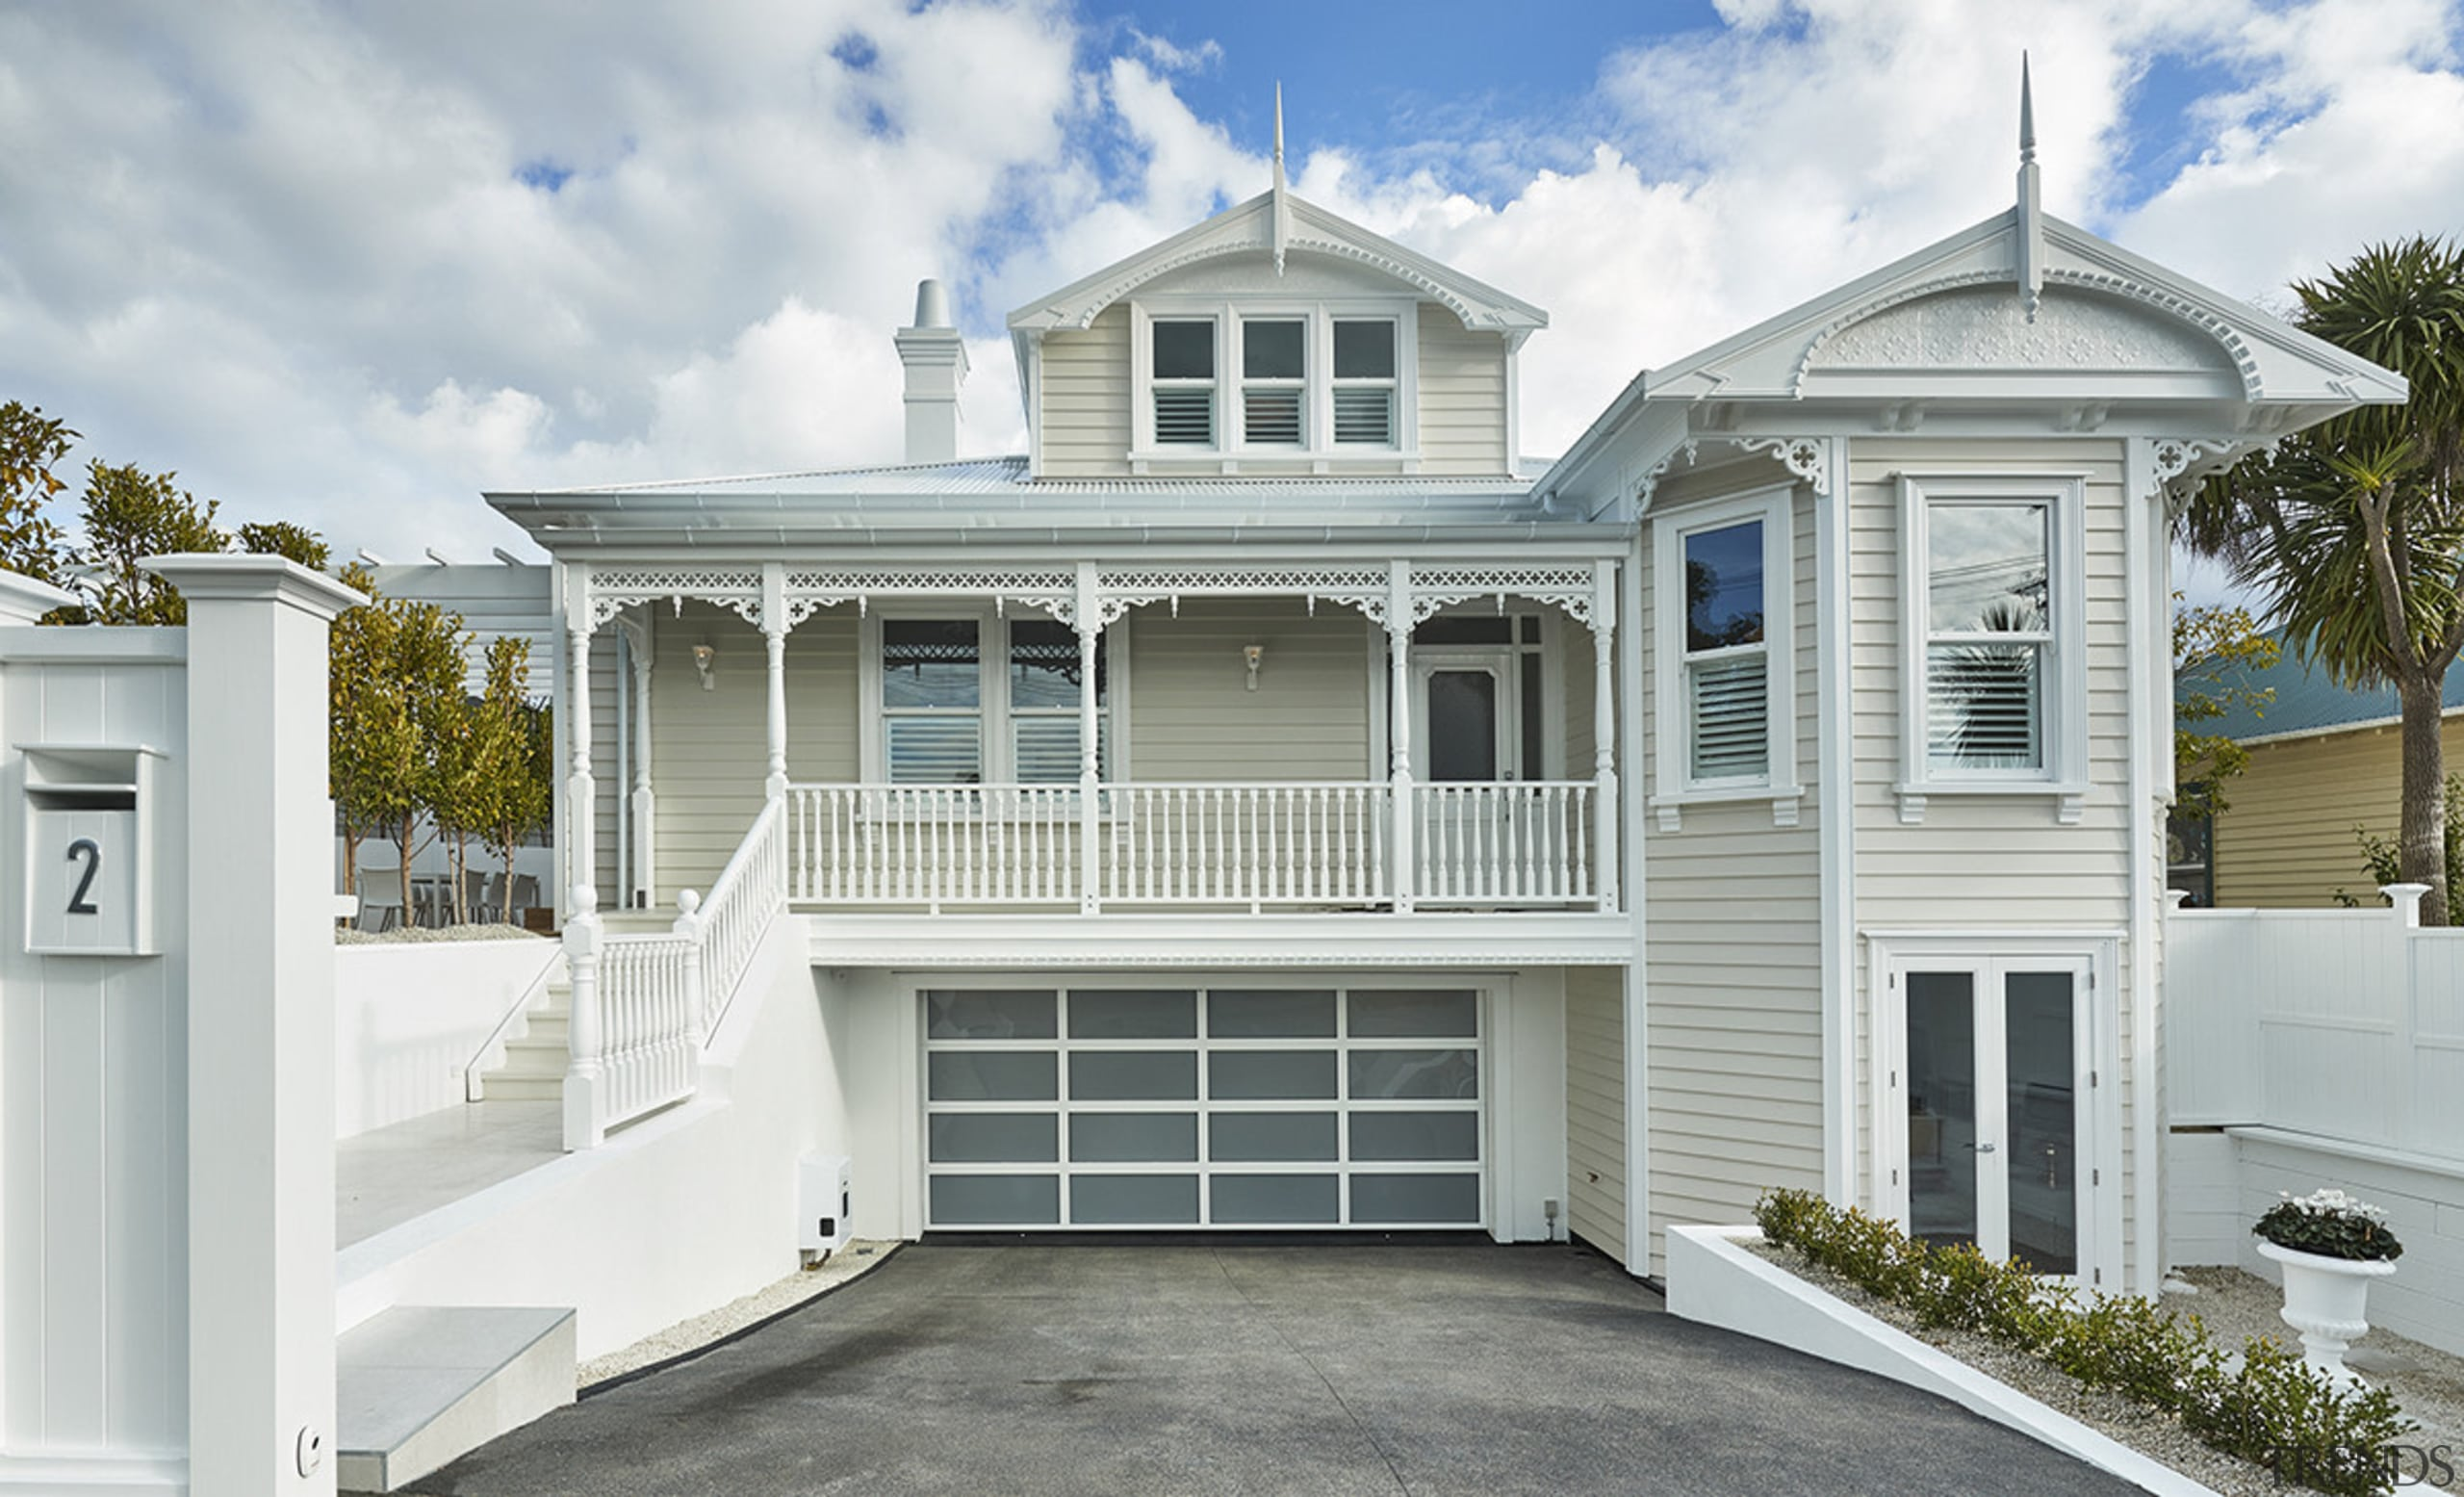 This comprehensive villa renovation was almost a new building, elevation, estate, facade, home, house, property, real estate, residential area, siding, window, gray, white